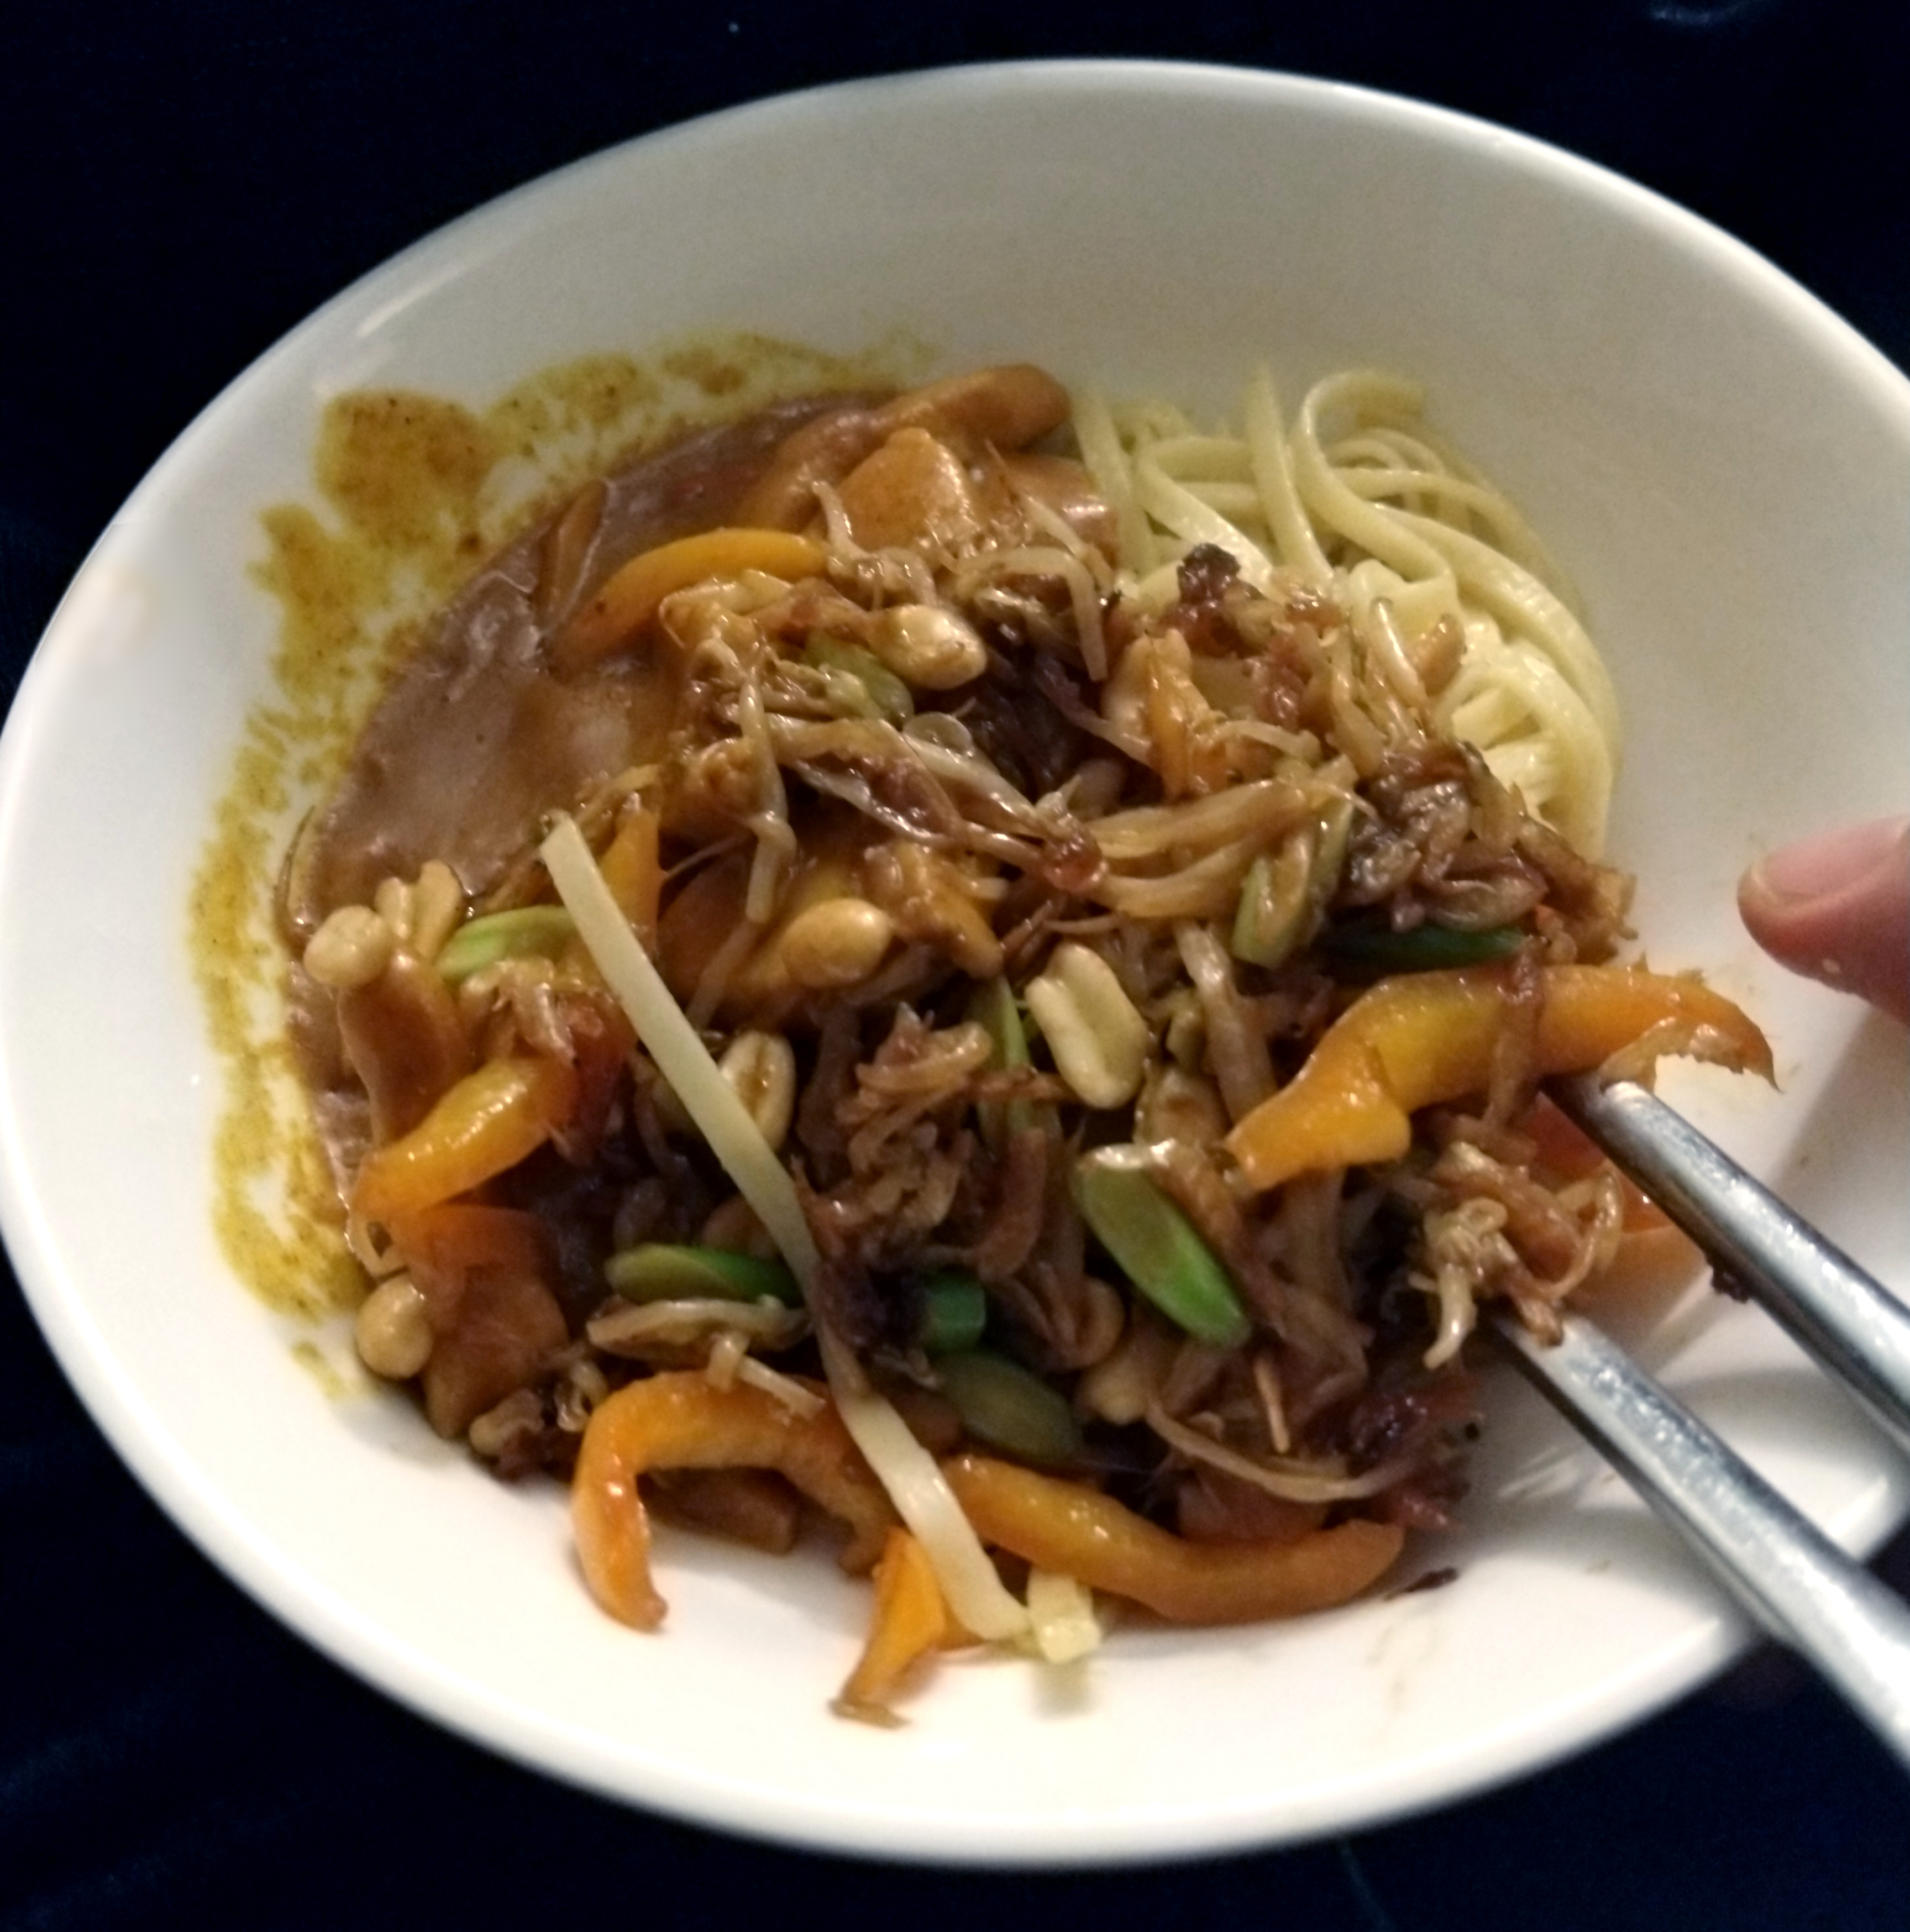 Action shot!  My bowl of noodles, showing the fried veggies and satay chicken